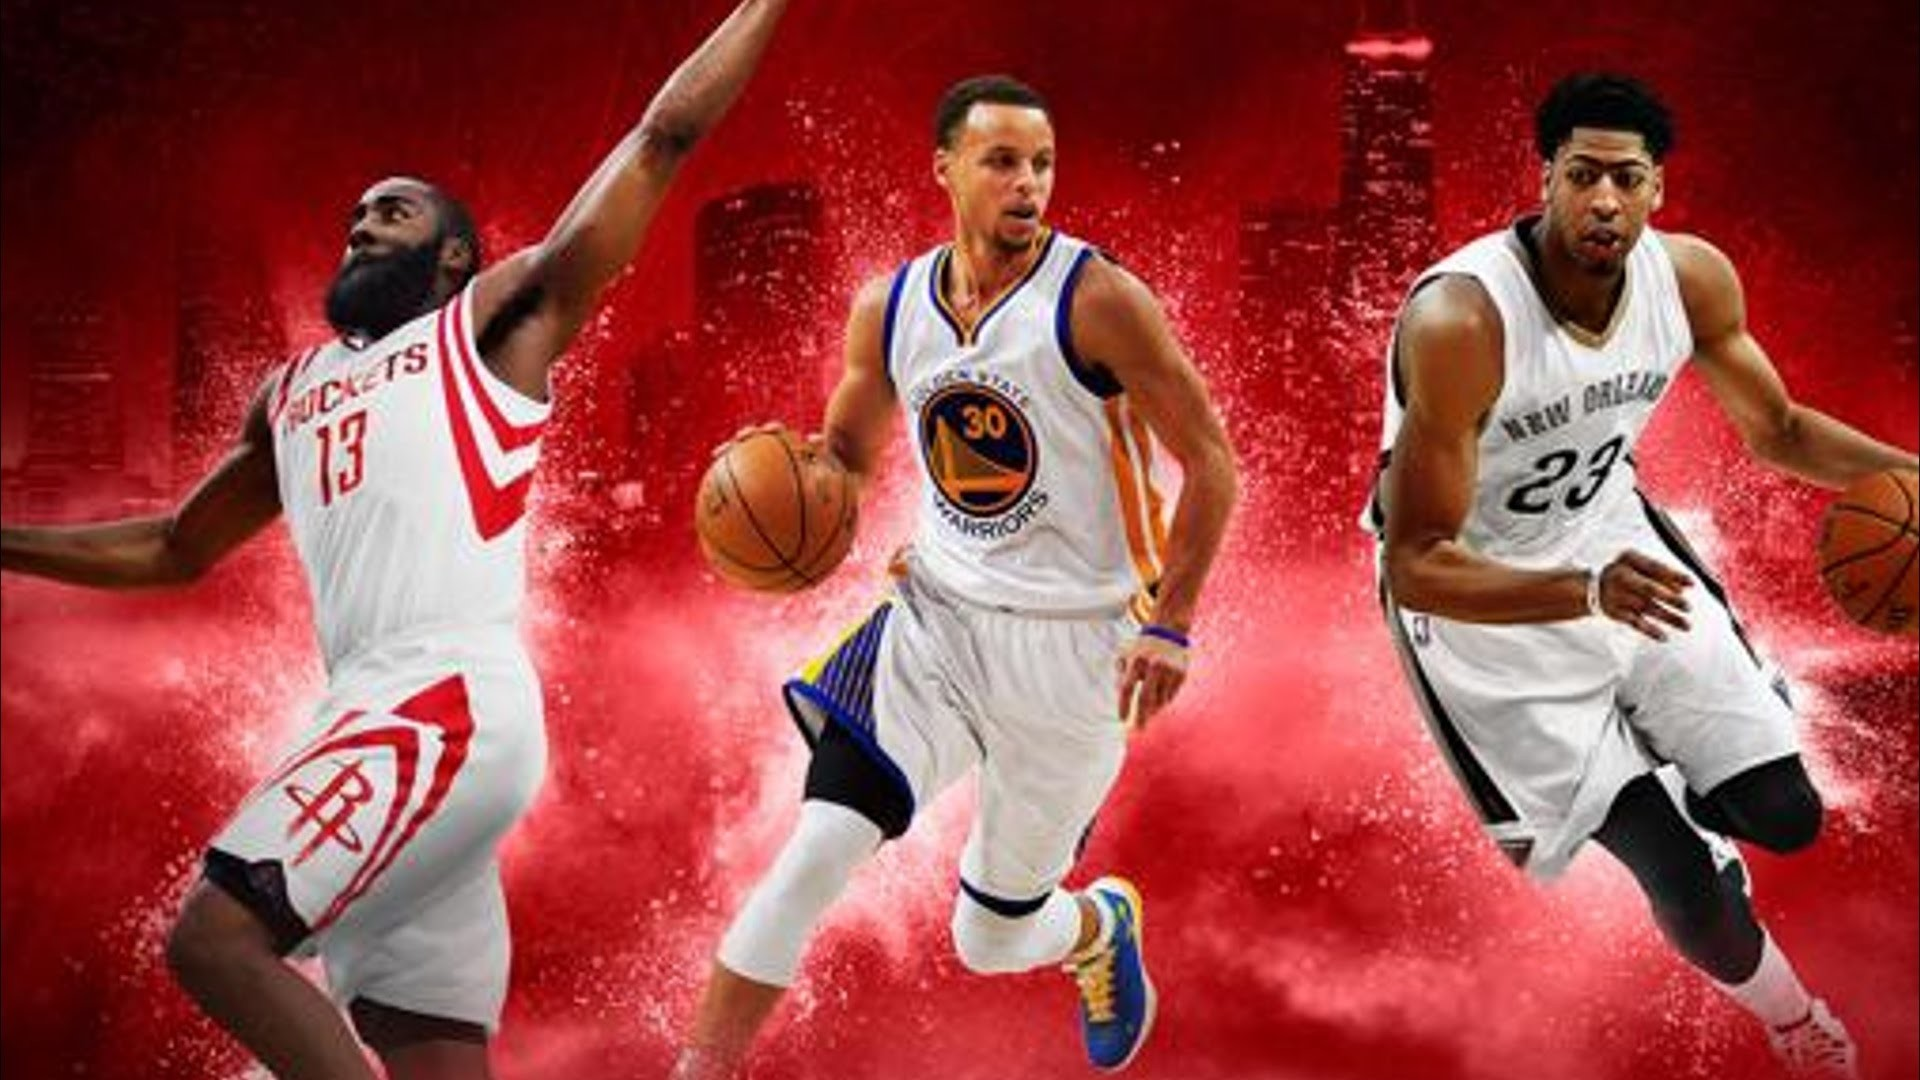 2K18 Wallpapers (87+ pictures)